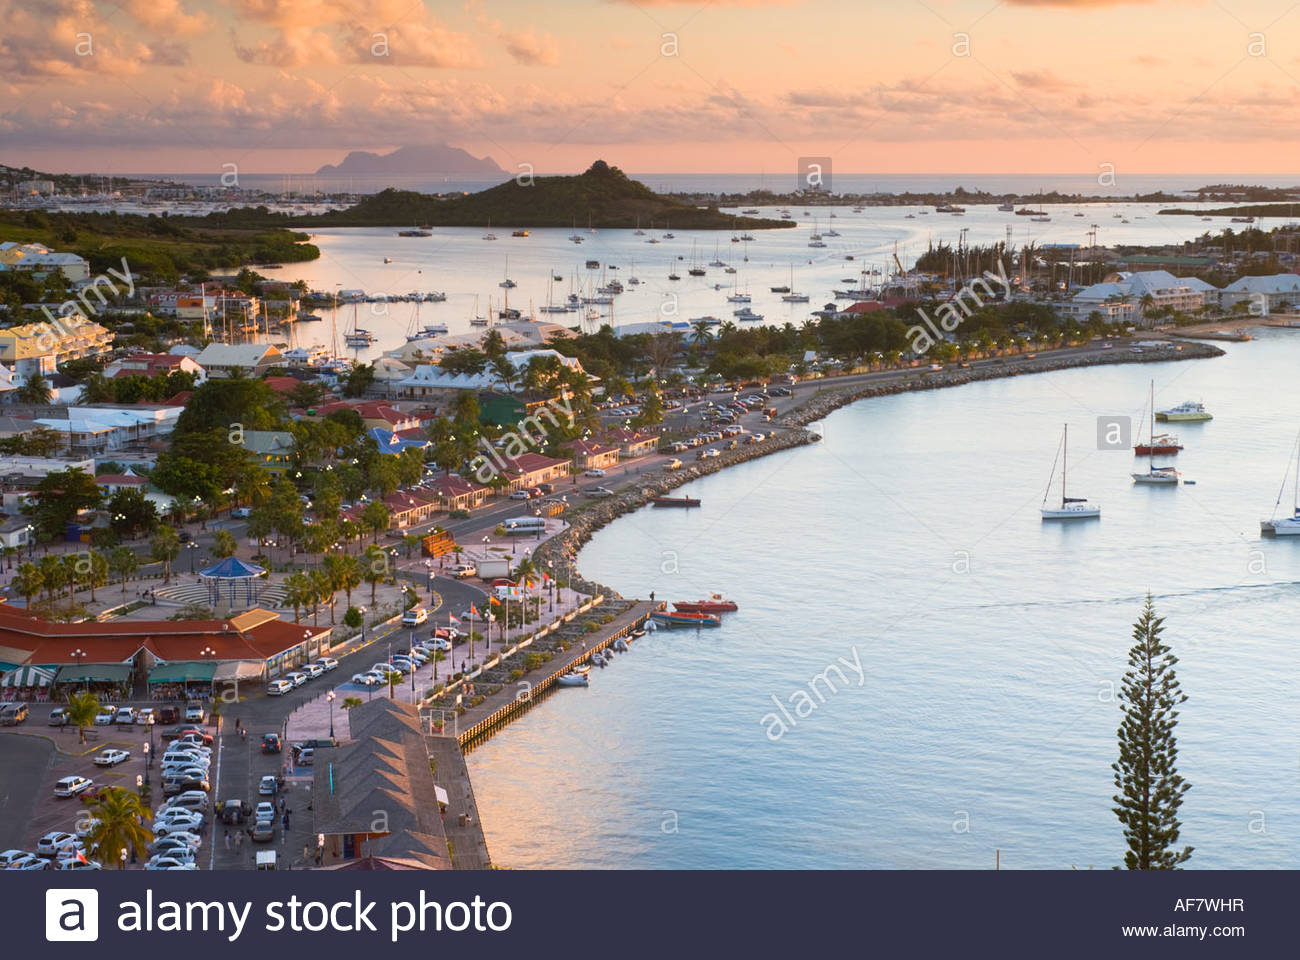 Elevated view of Marigot, from Fort St Louis, Saint Martin, French Antilles, Leeward Islands, Caribbean - Stock Image